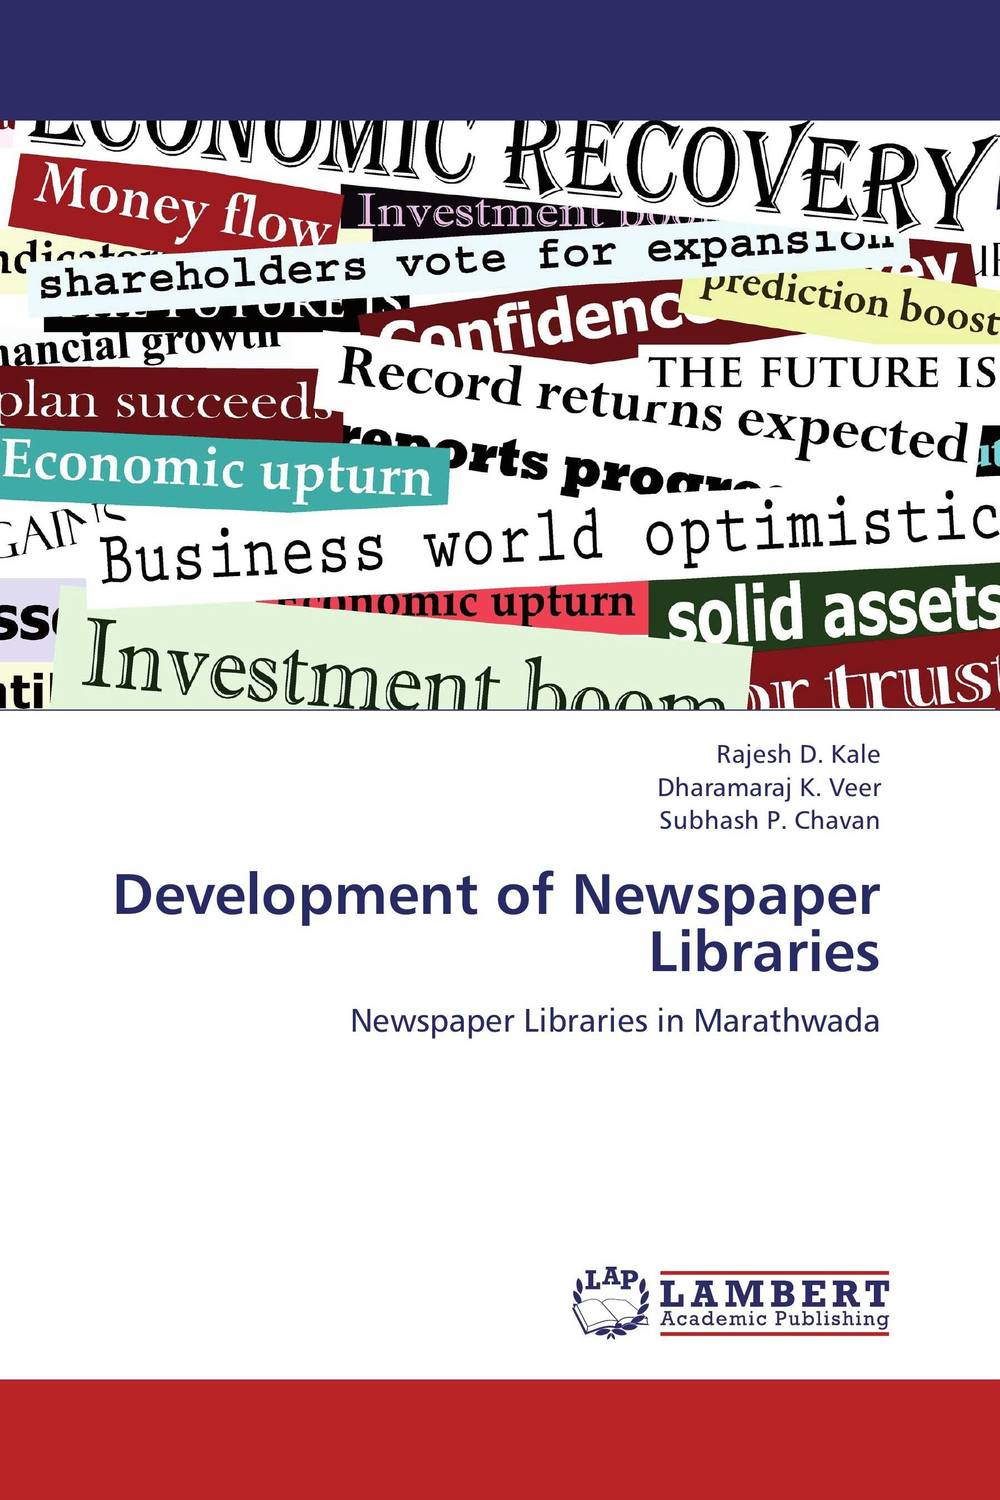 Development of Newspaper Libraries presidential nominee will address a gathering